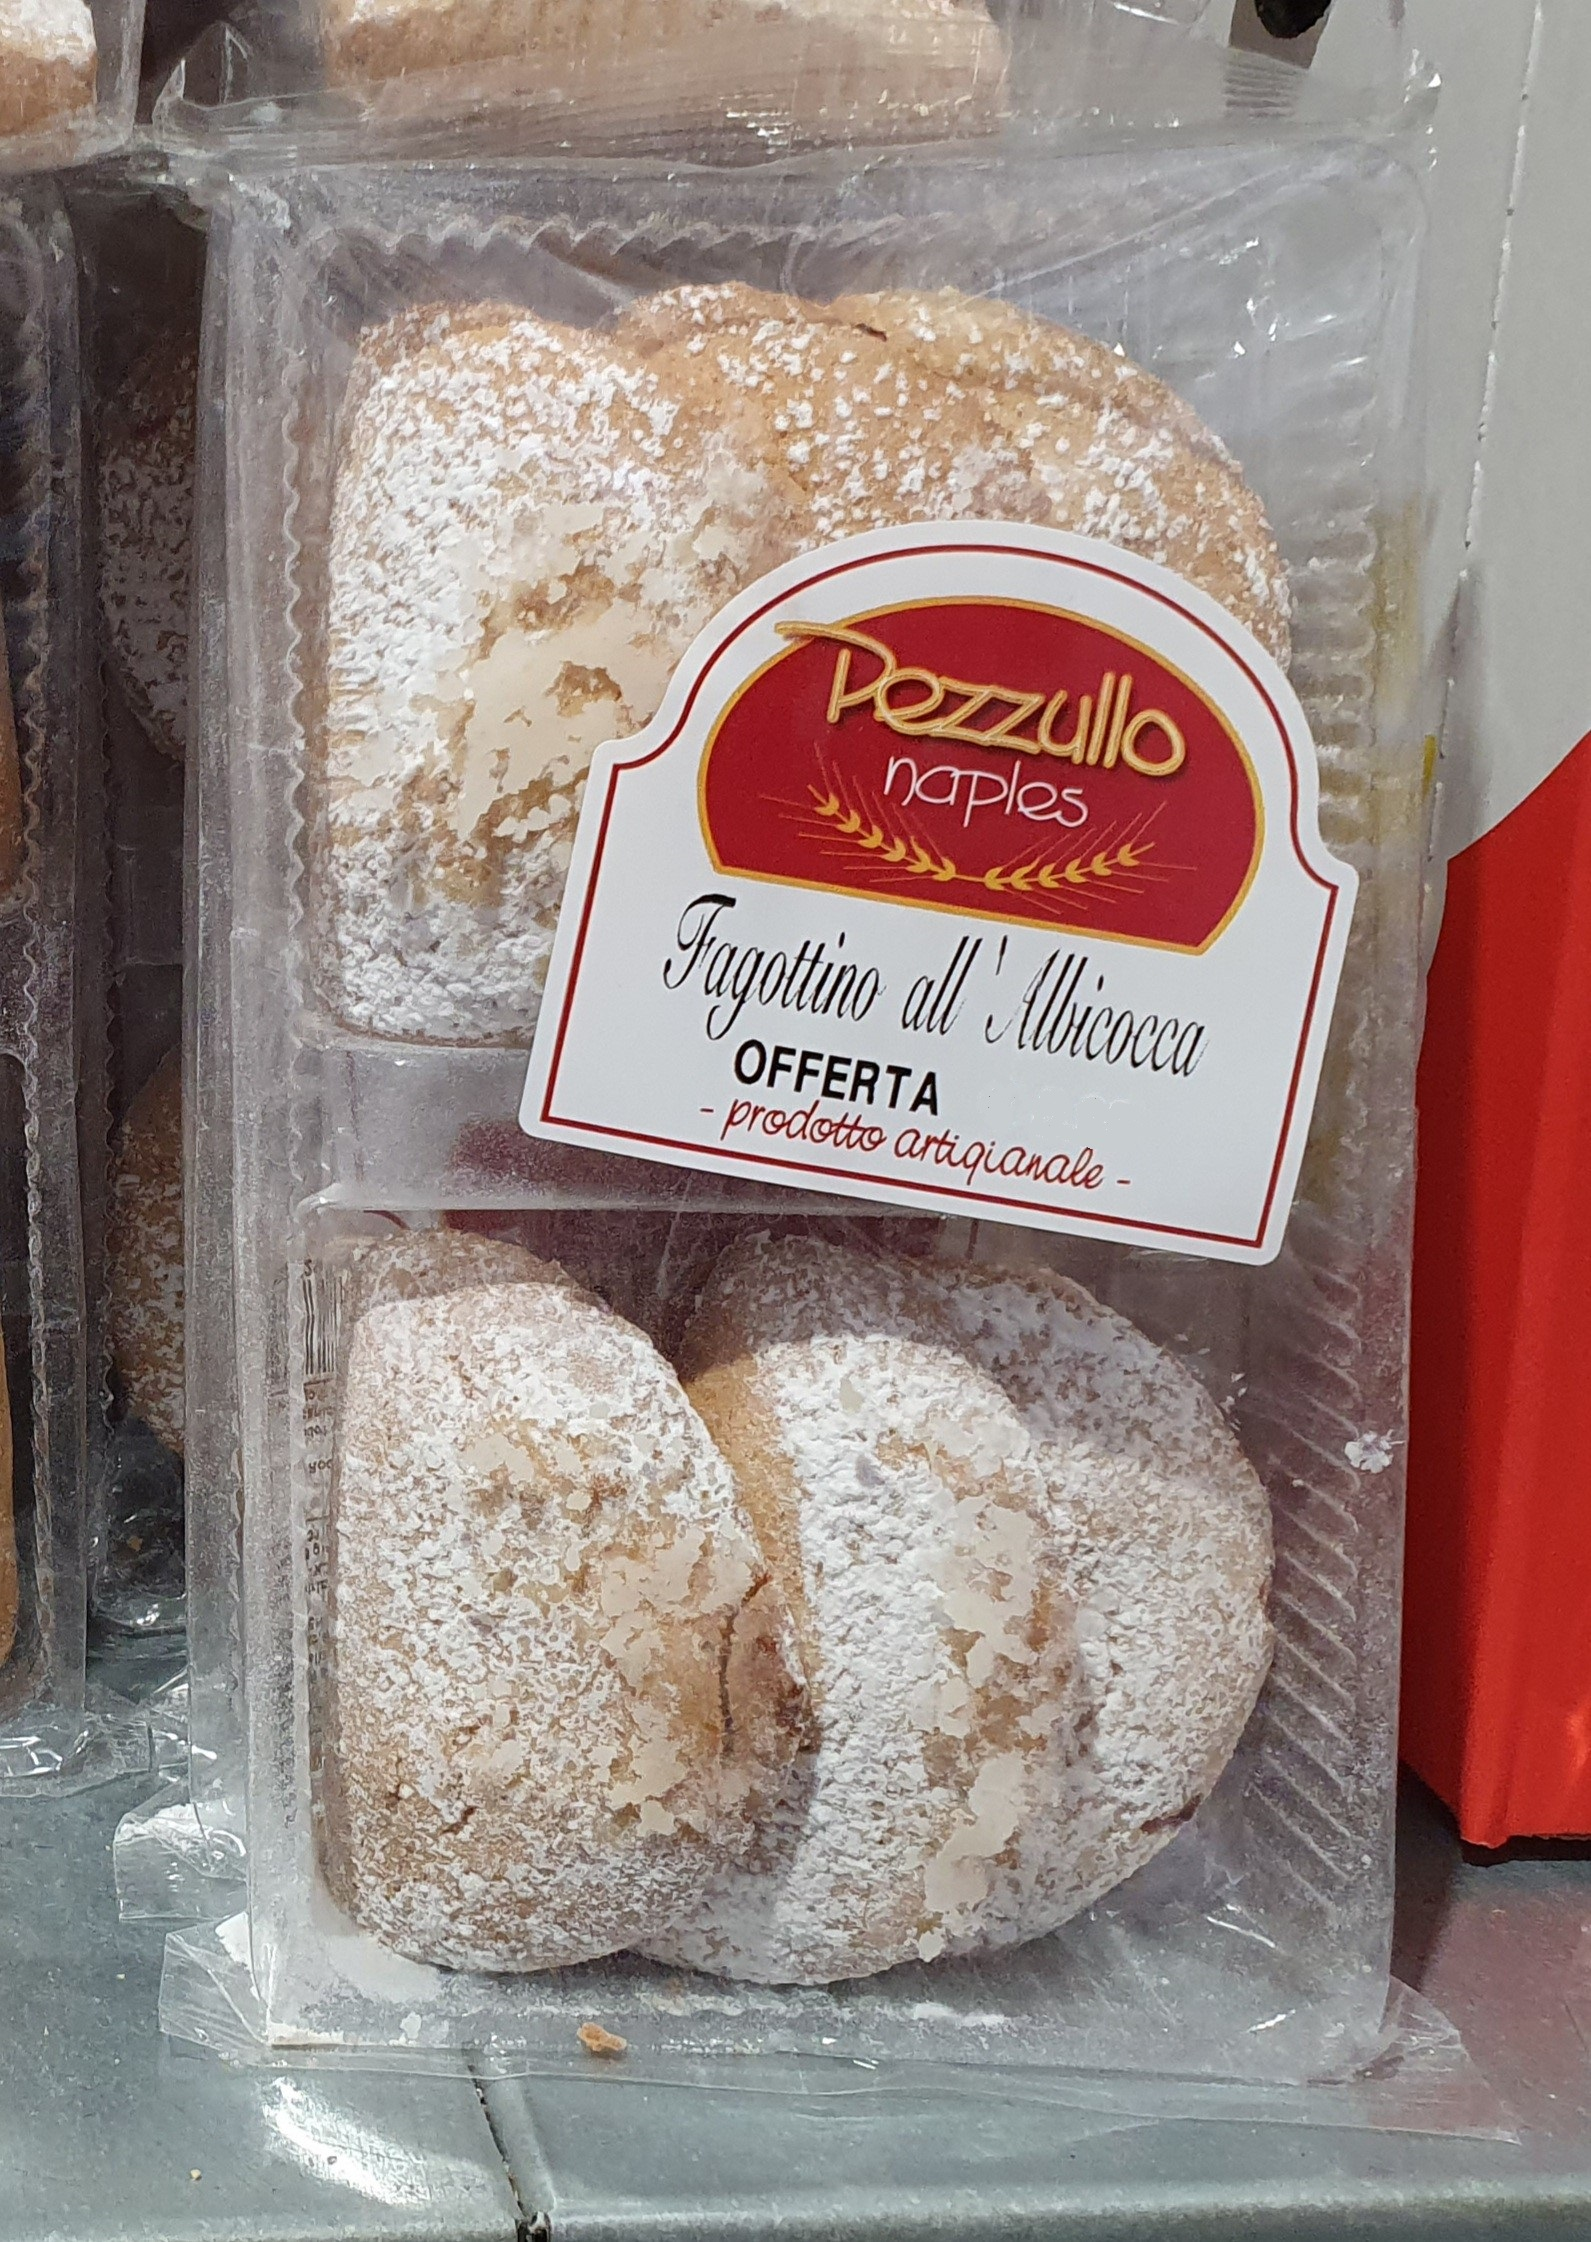 "Pastry bends with apricot filling 150gr (5.29oz) ""Imported from Italy"""